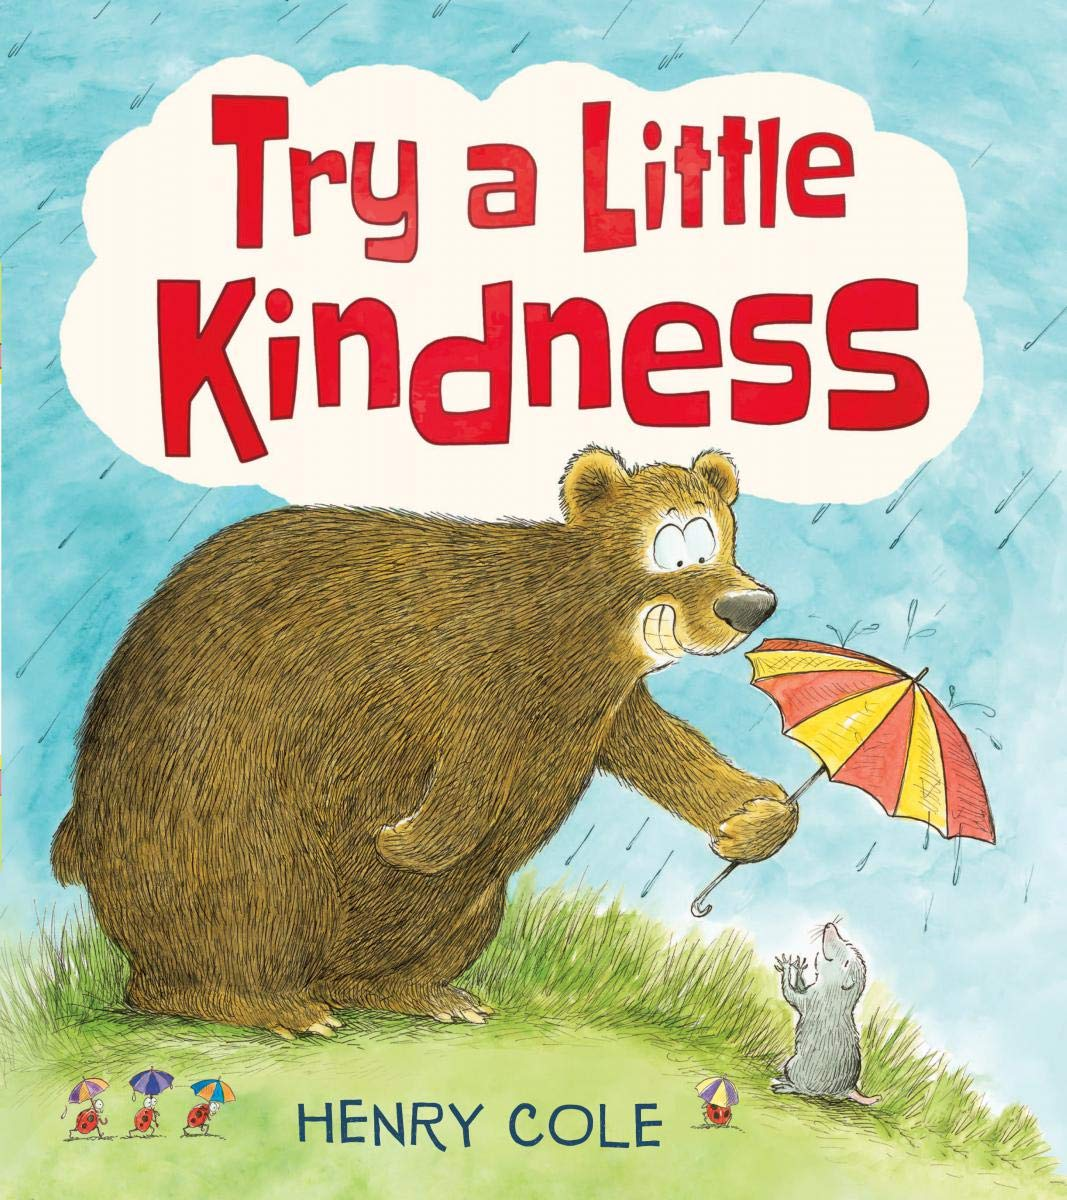 In this funny picture book, bestselling illustrator Henry Cole shows kids different ways to be kind with his hysterical cartoon animal characters. Read more about this book and more books in my Holiday Gift Ideas For Kids Guide.